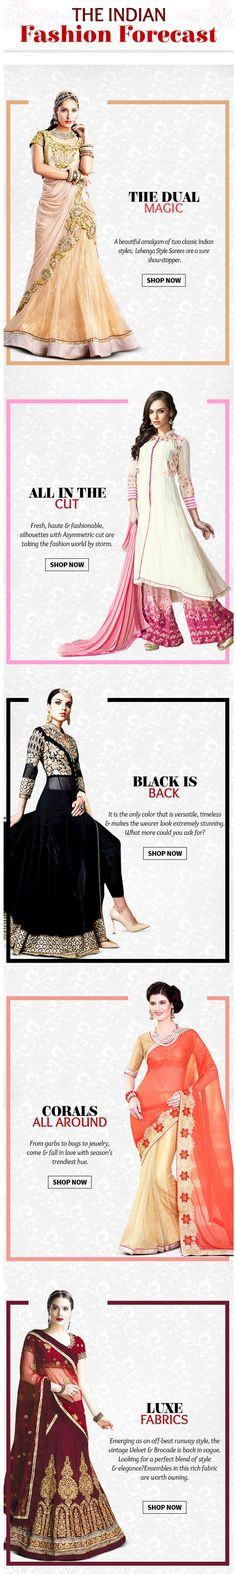 Choose from Lehenga Style Sarees, Velvet clothes, Asymmetric ensembles, all Ethnic Fashion in Black and the season's best color trend- Corals.